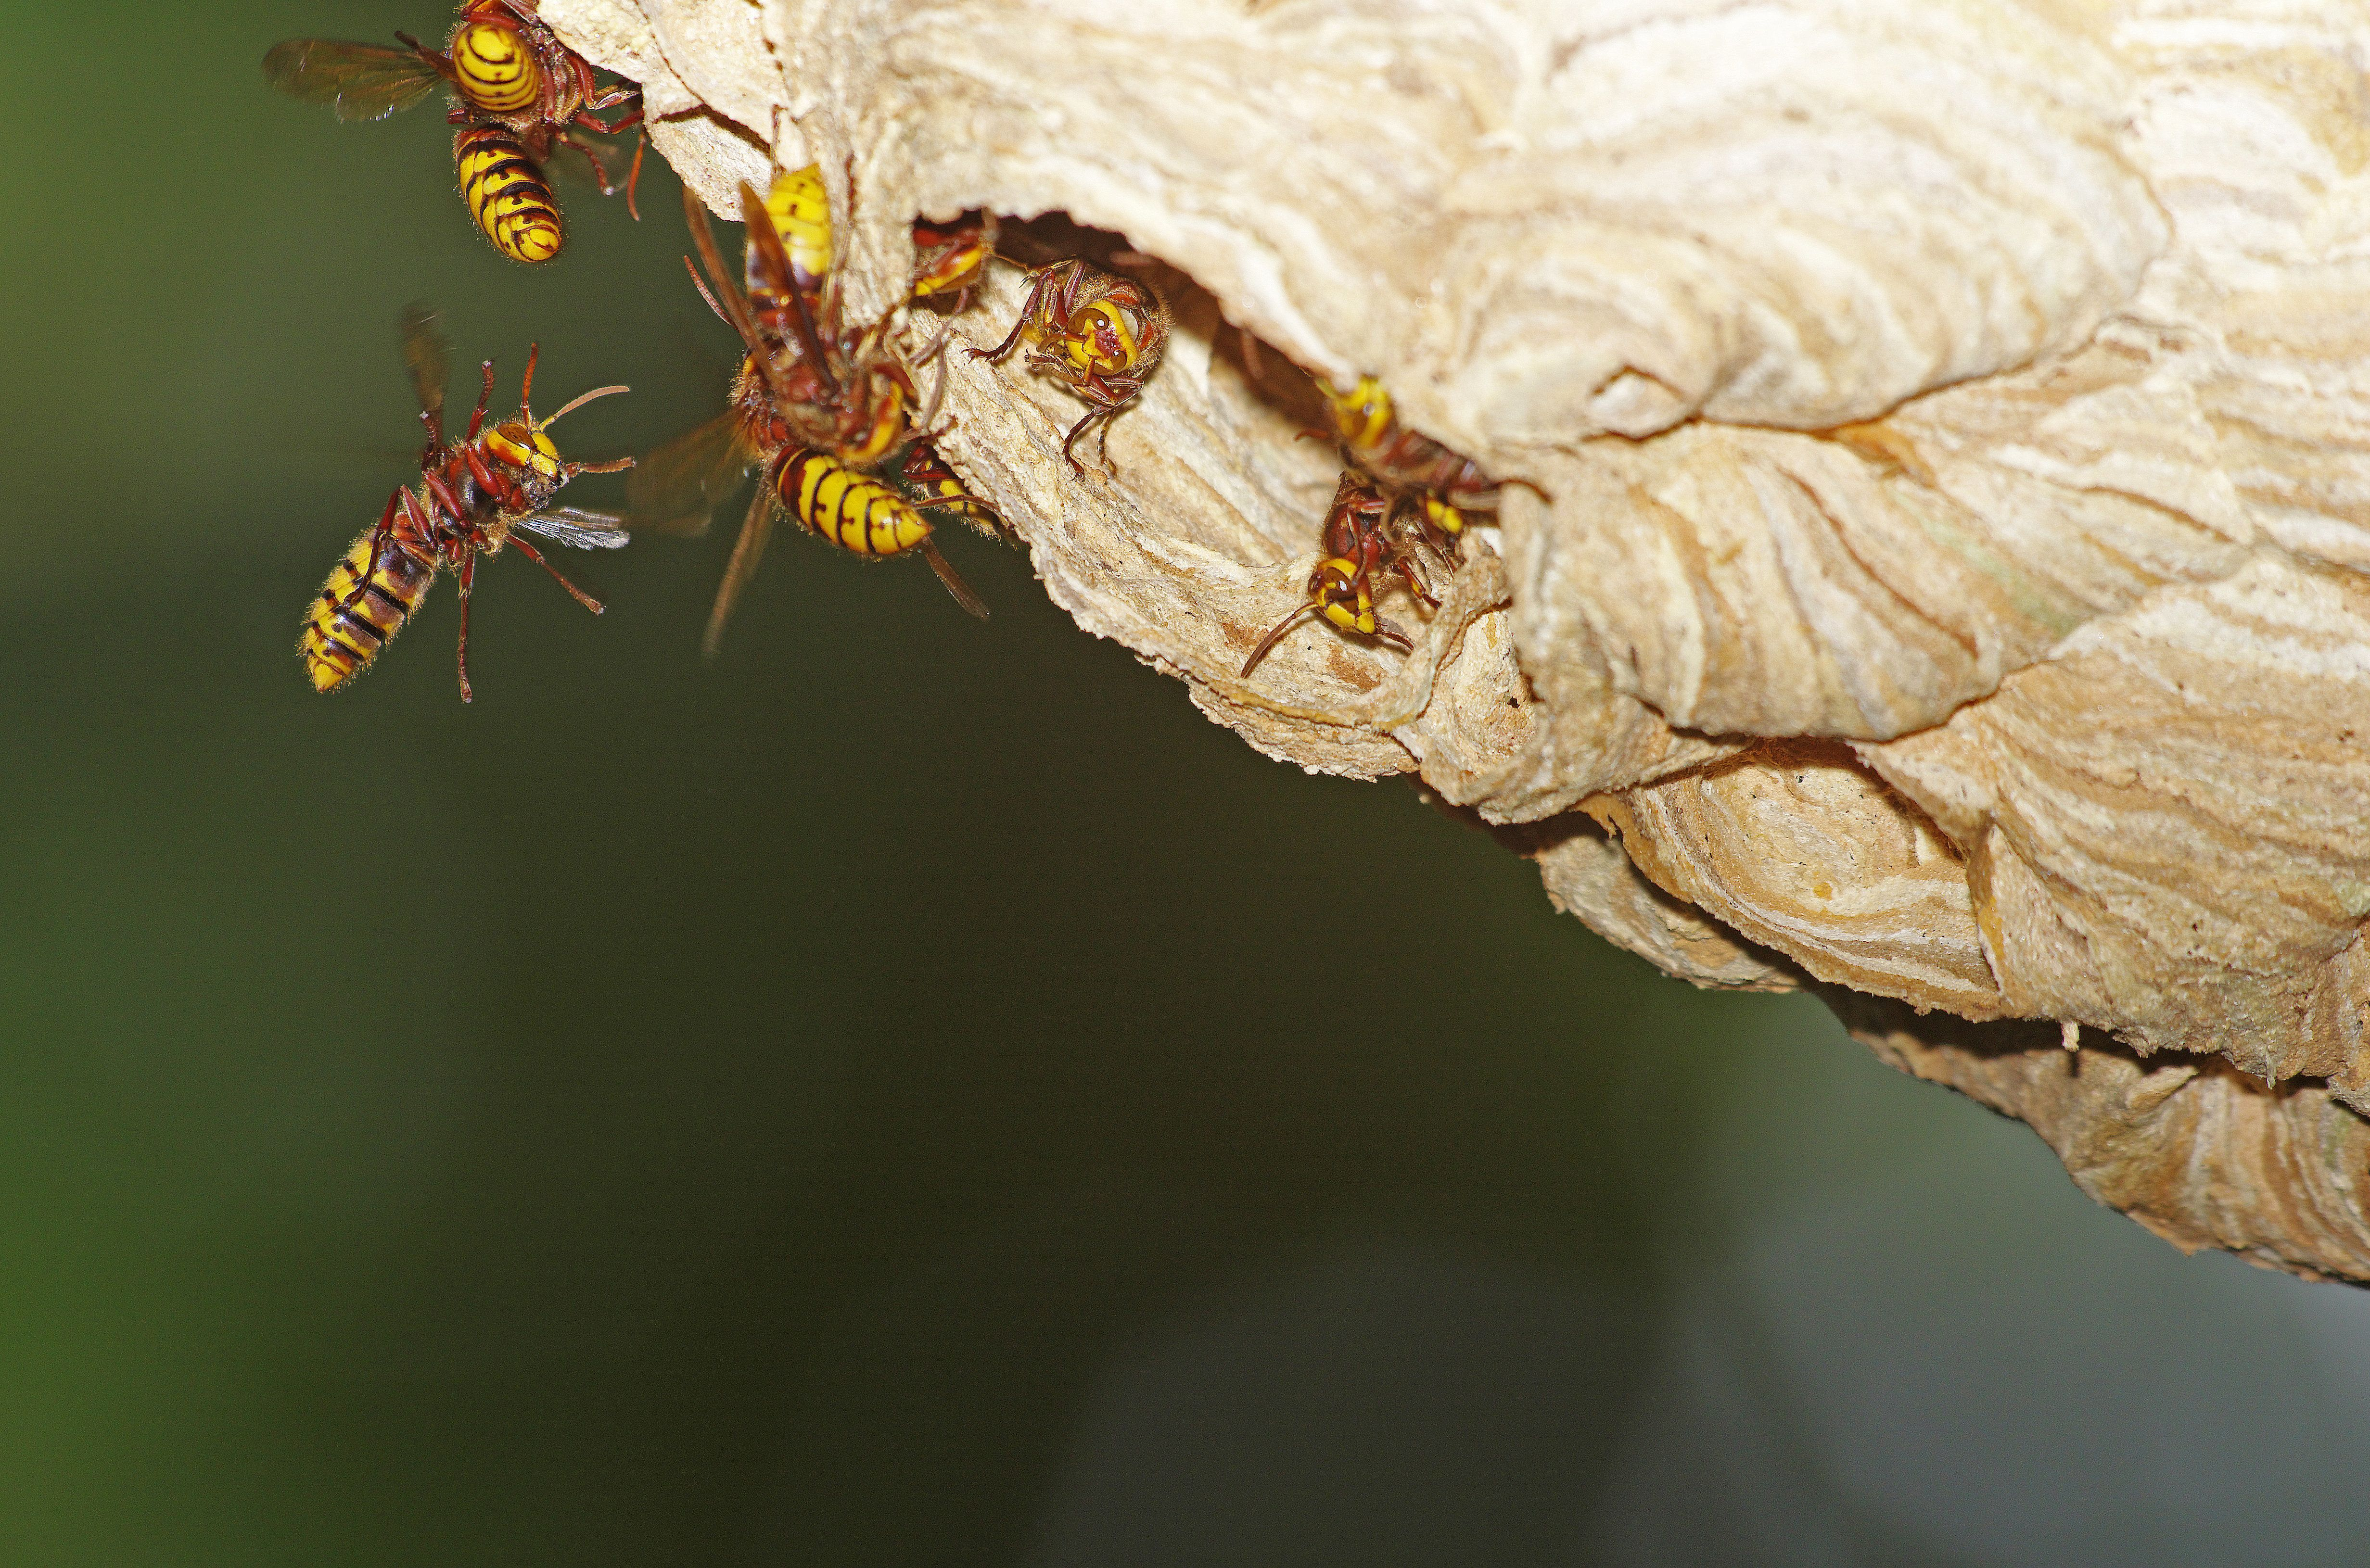 'Drunk And Irritable' Wasps Are Rampaging Through Britain, Experts Say